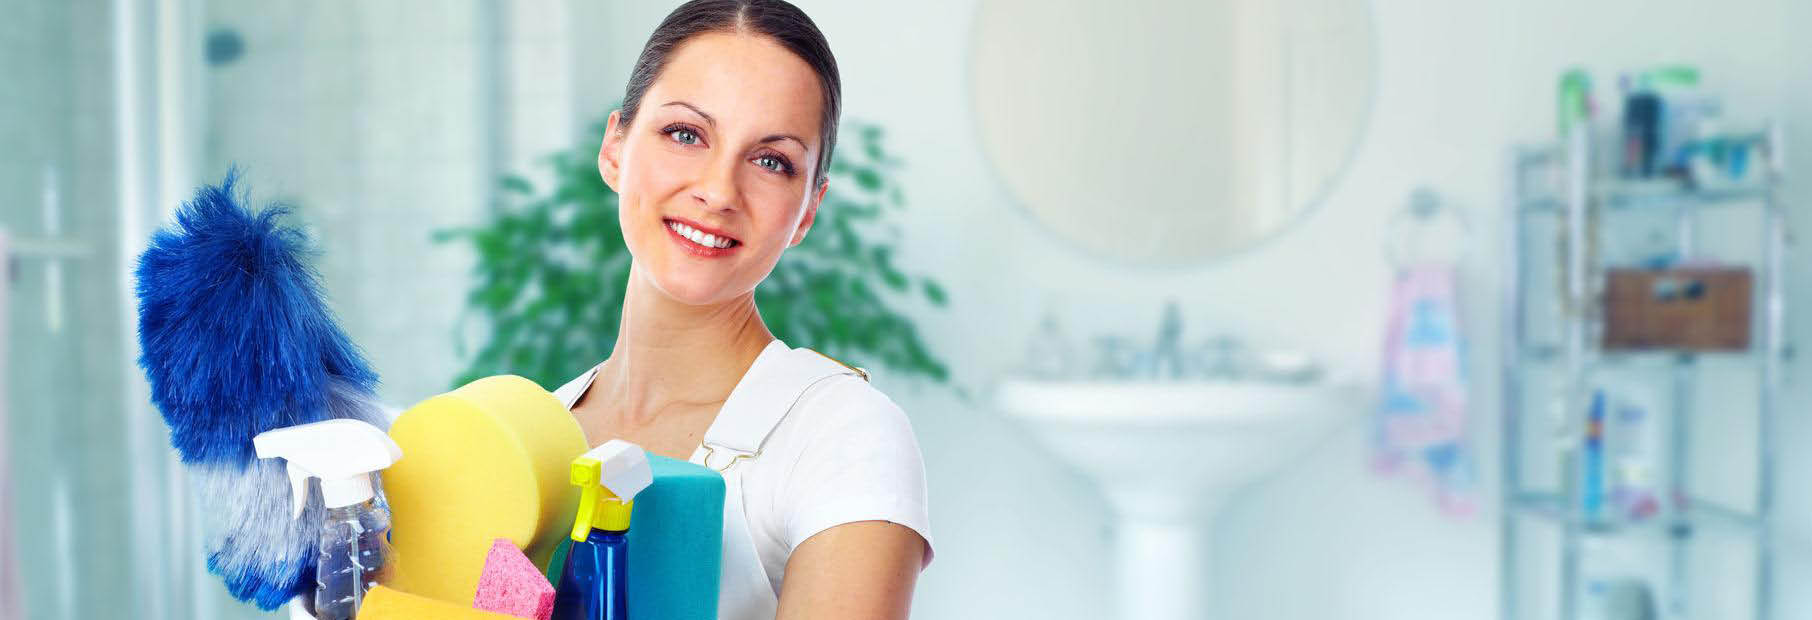 spring touch house cleaning orange county house cleaning Mission viejo housekeepers Mission viejo